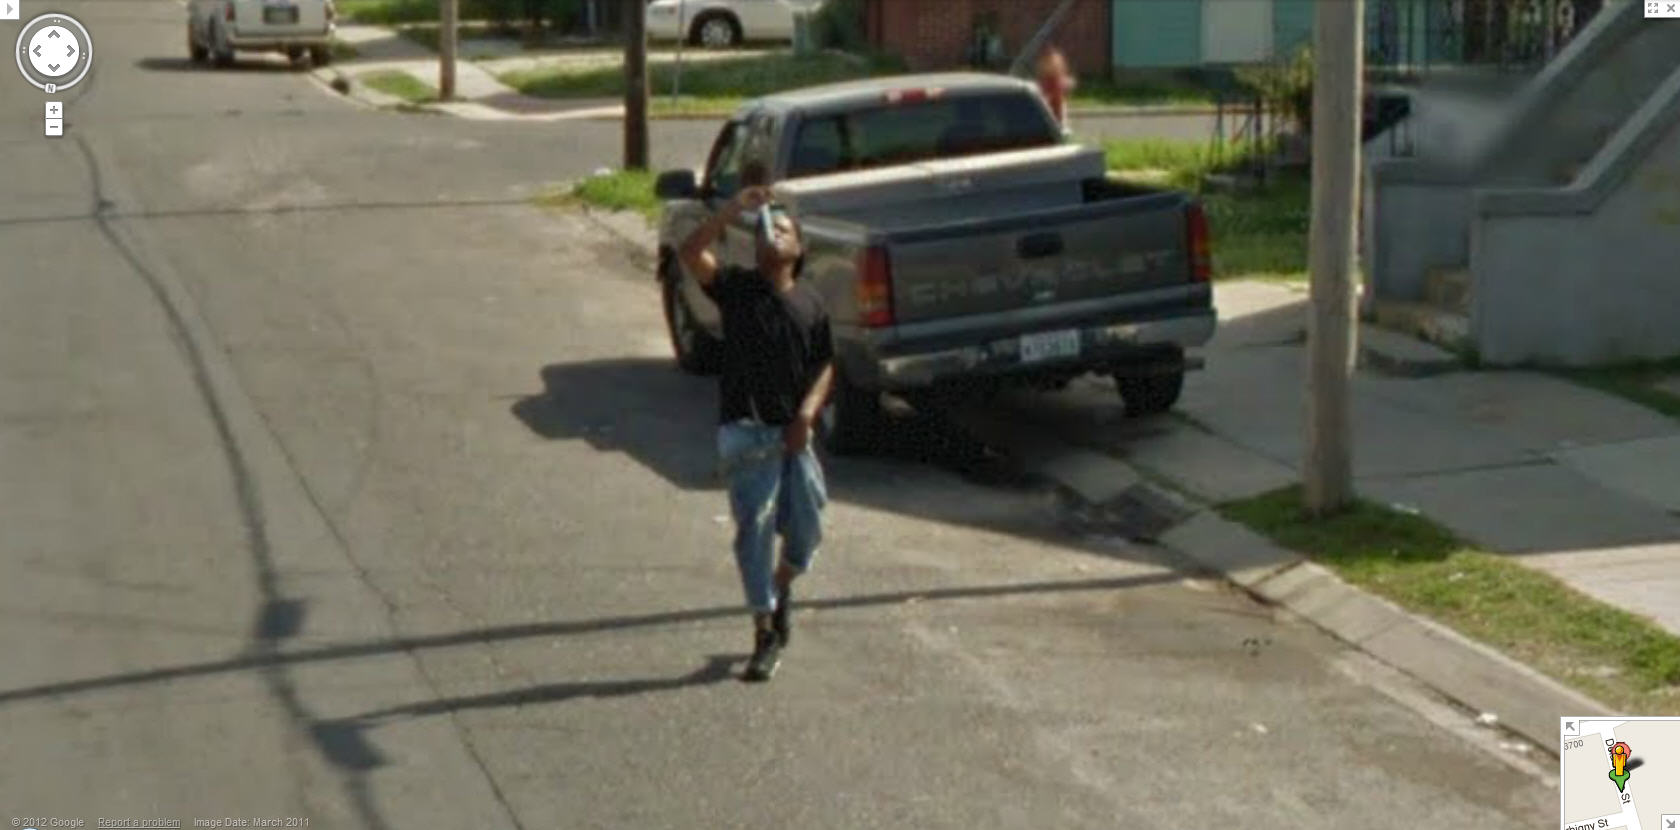 Google Street View Captures a talented young man in New Orleans